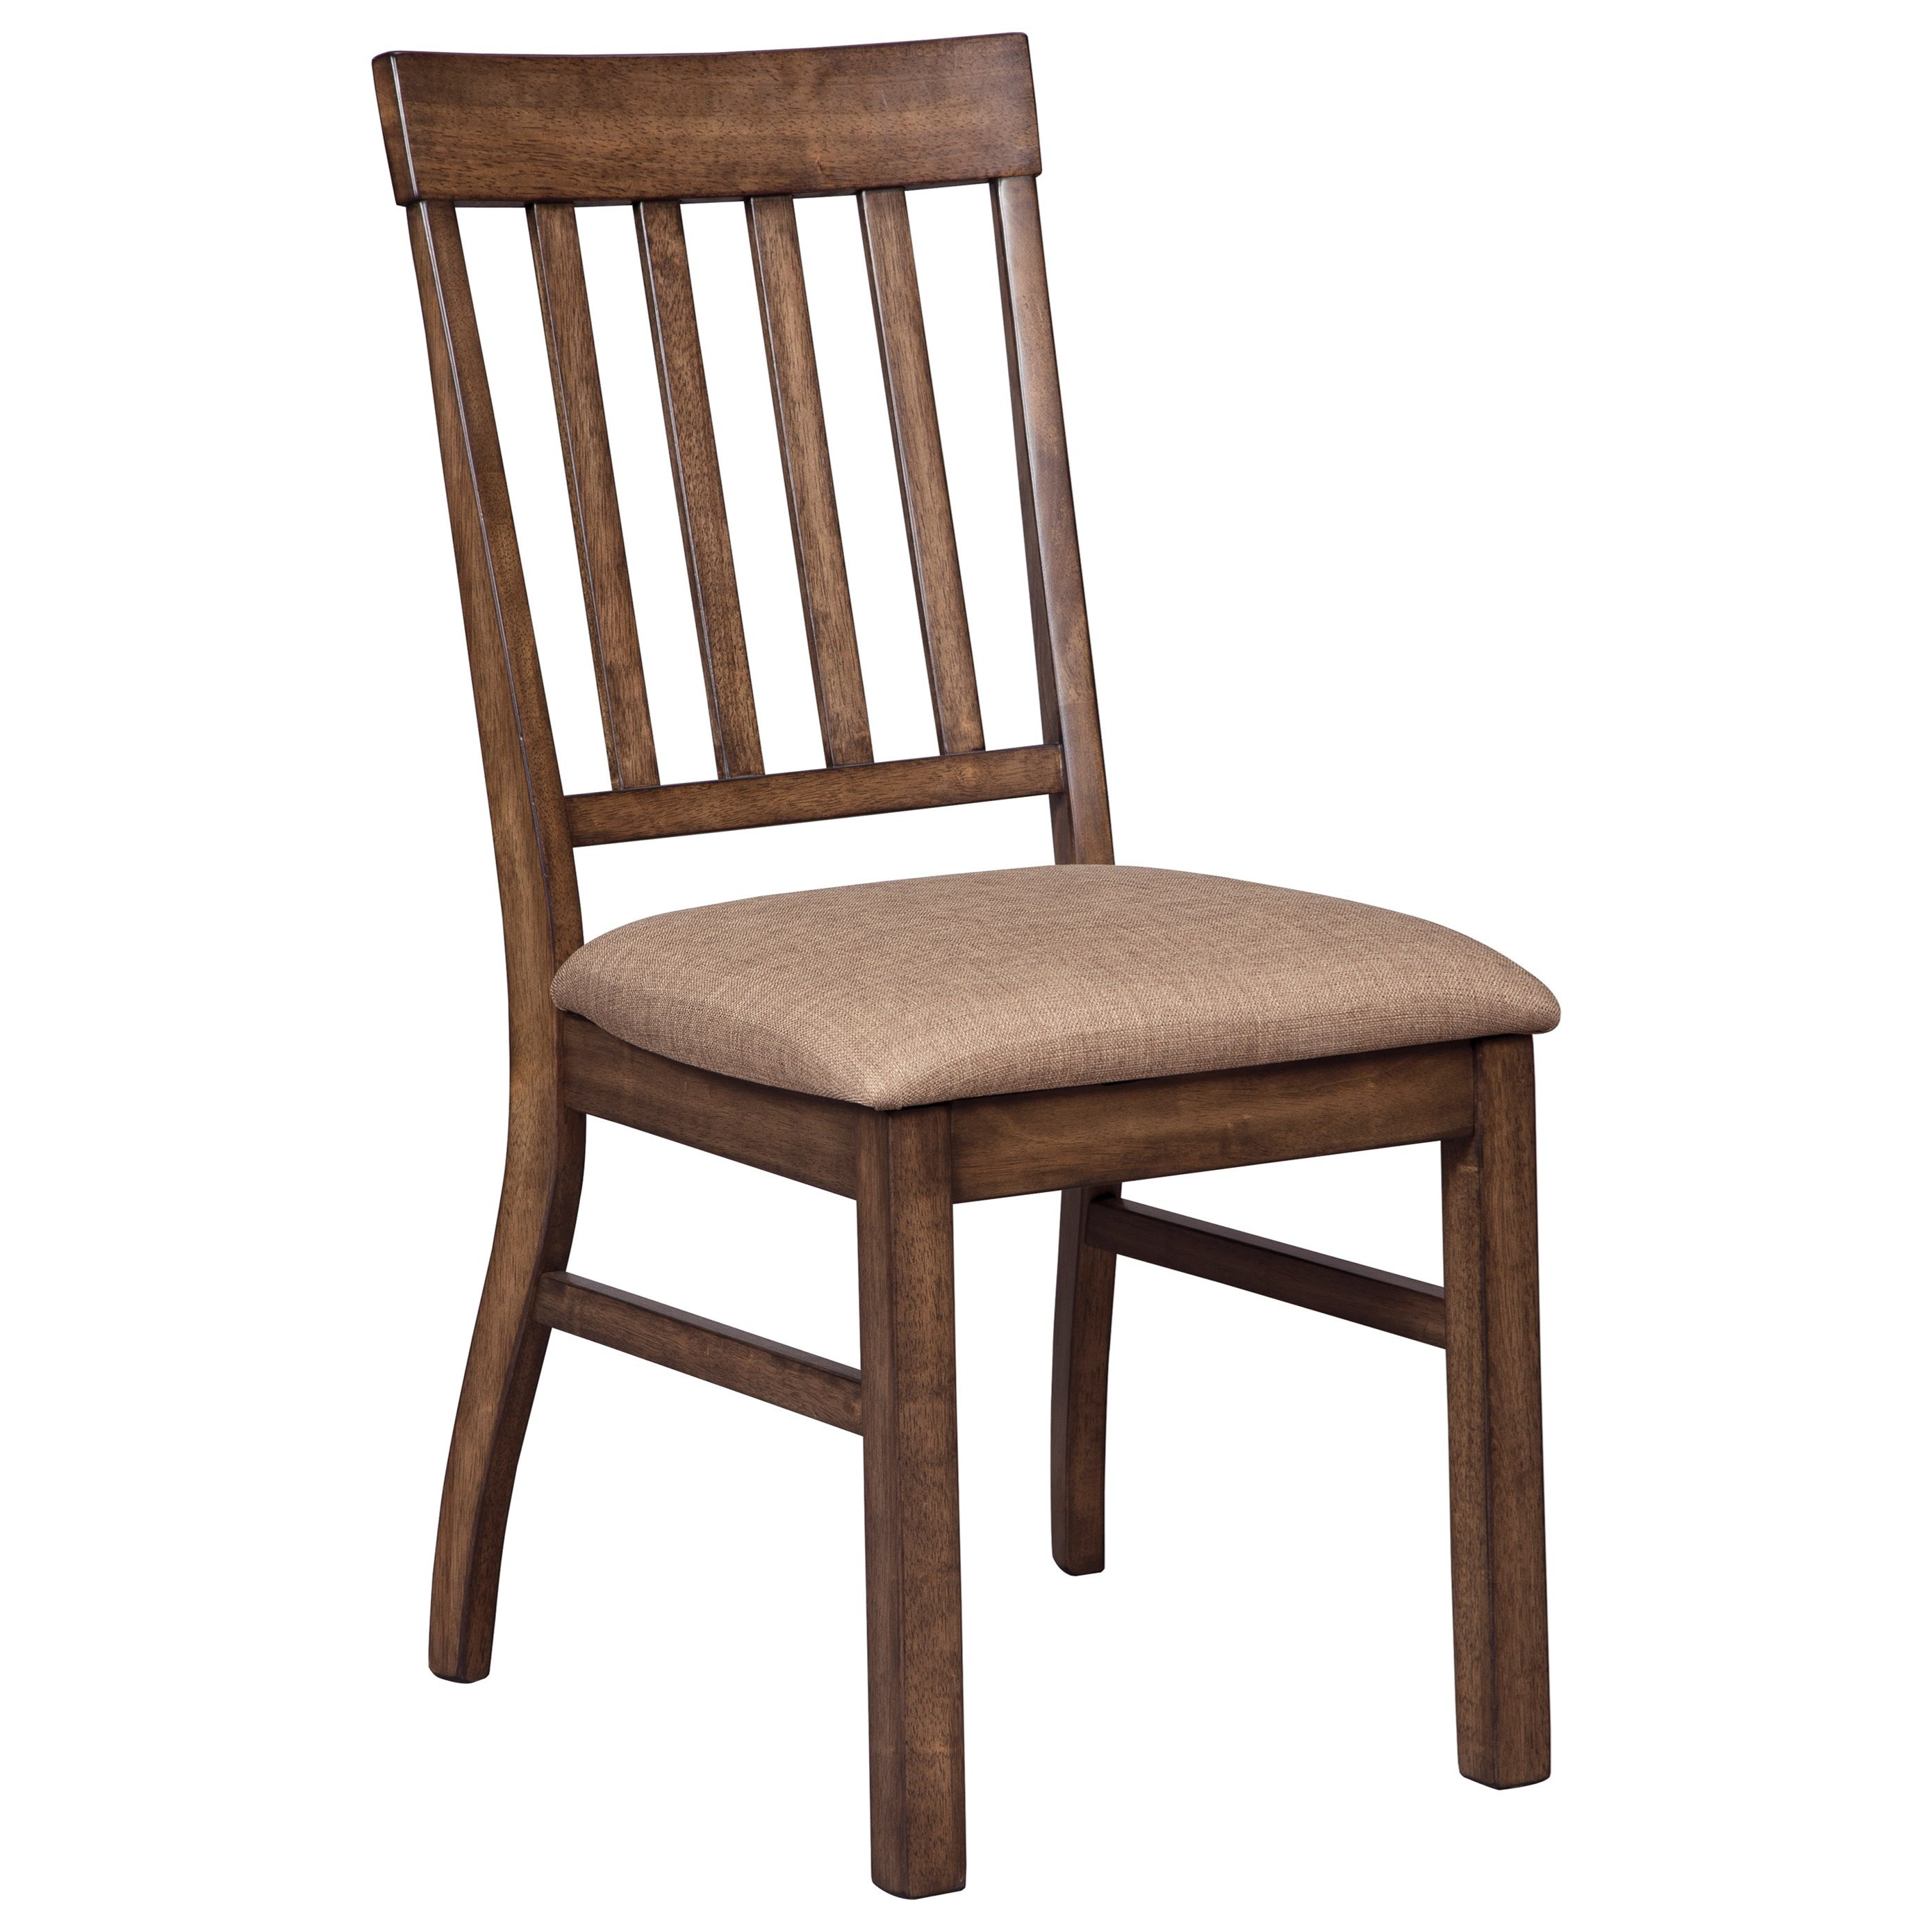 Signature Design by Ashley Zilmar Dining Upholstered Side Chair - Item Number: D448-01